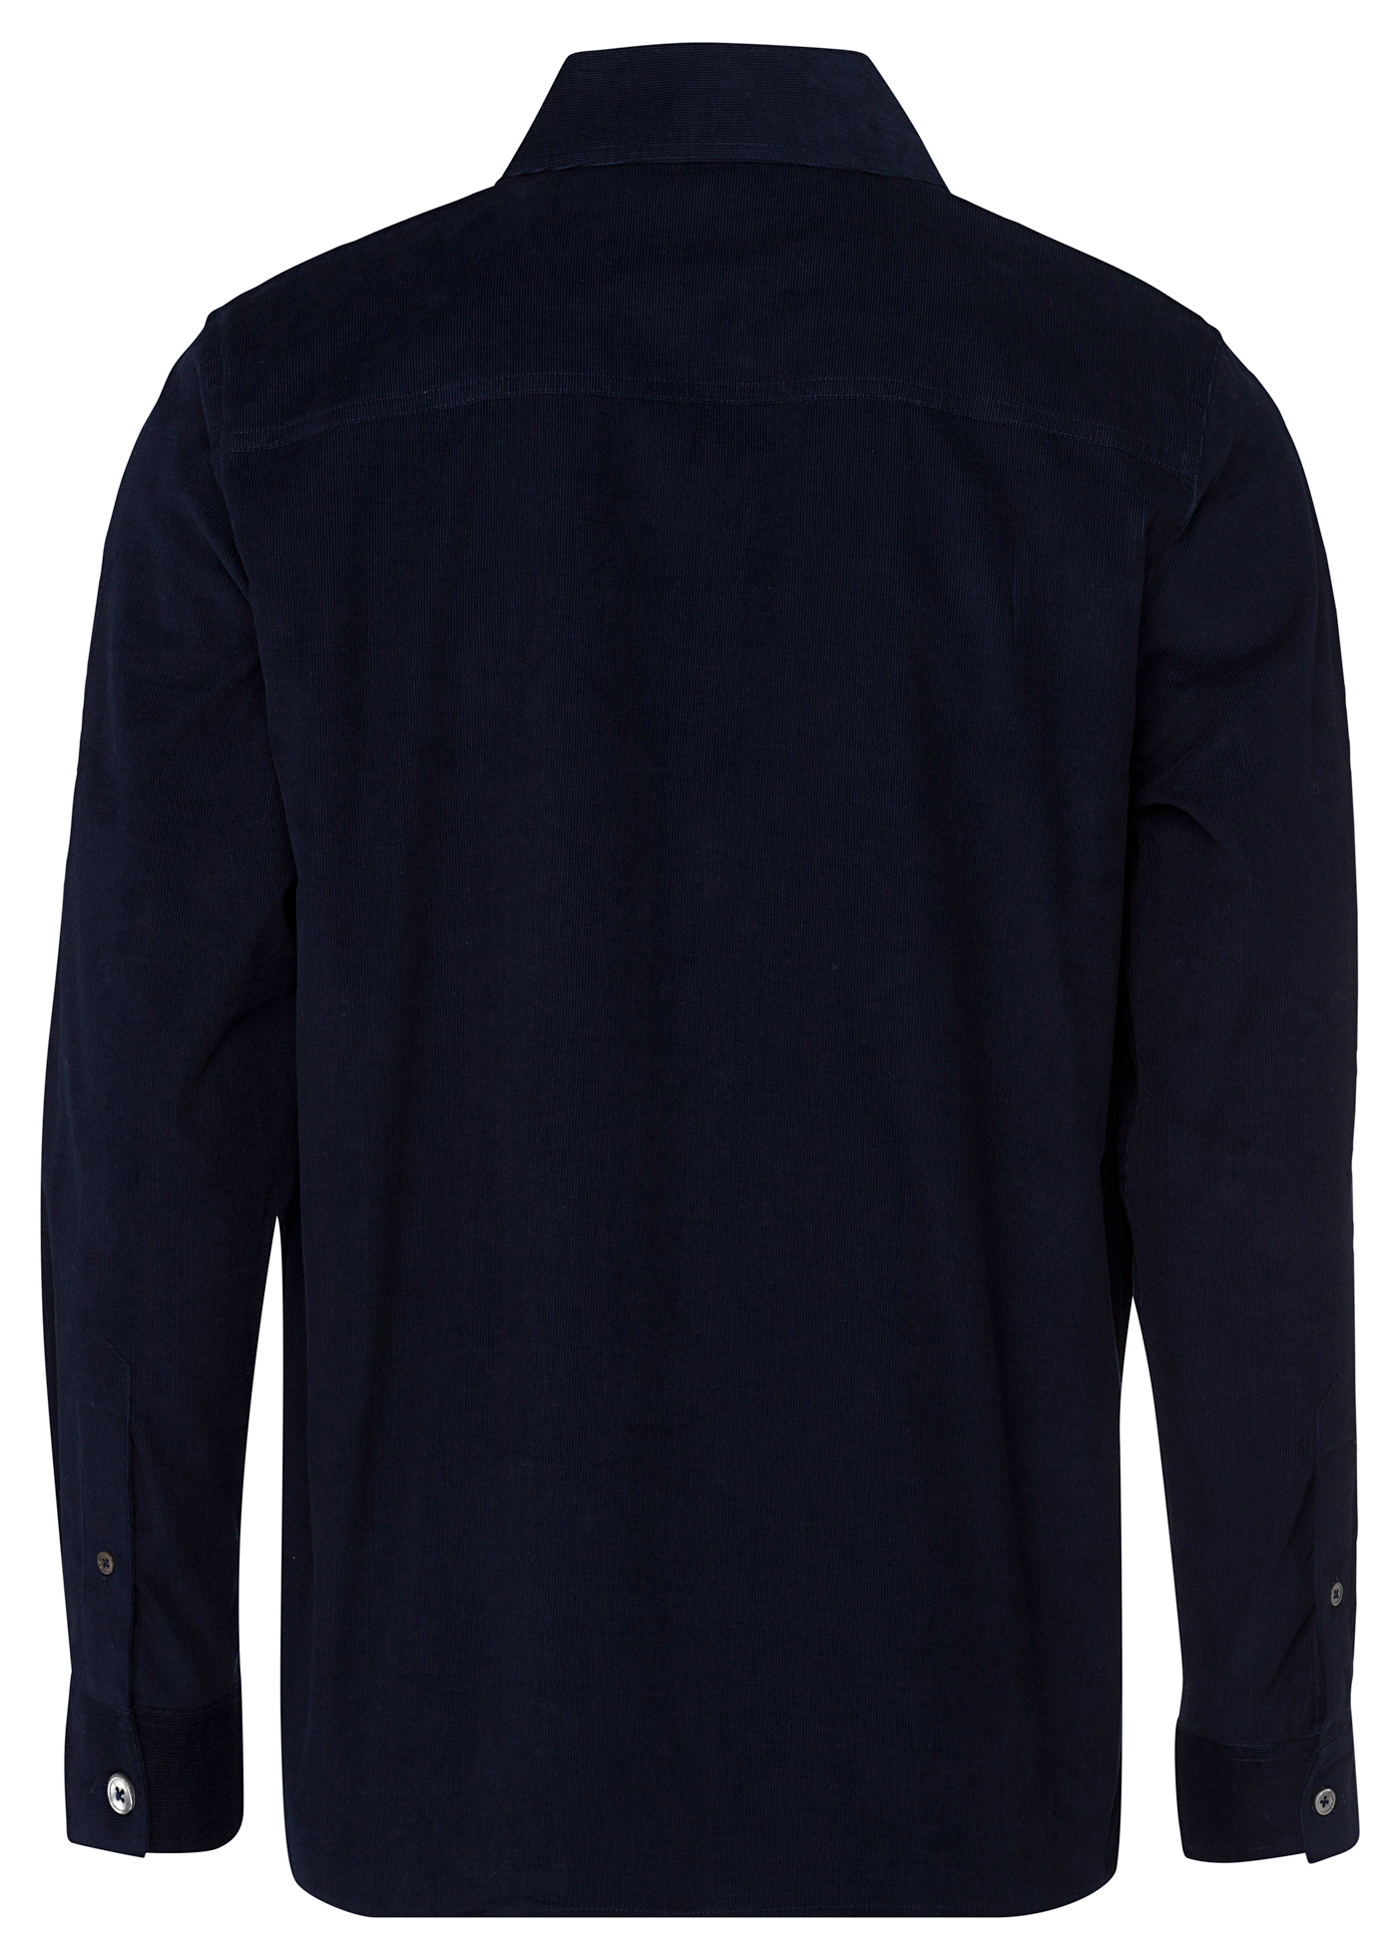 Cotton Cord Overshirt image number 1